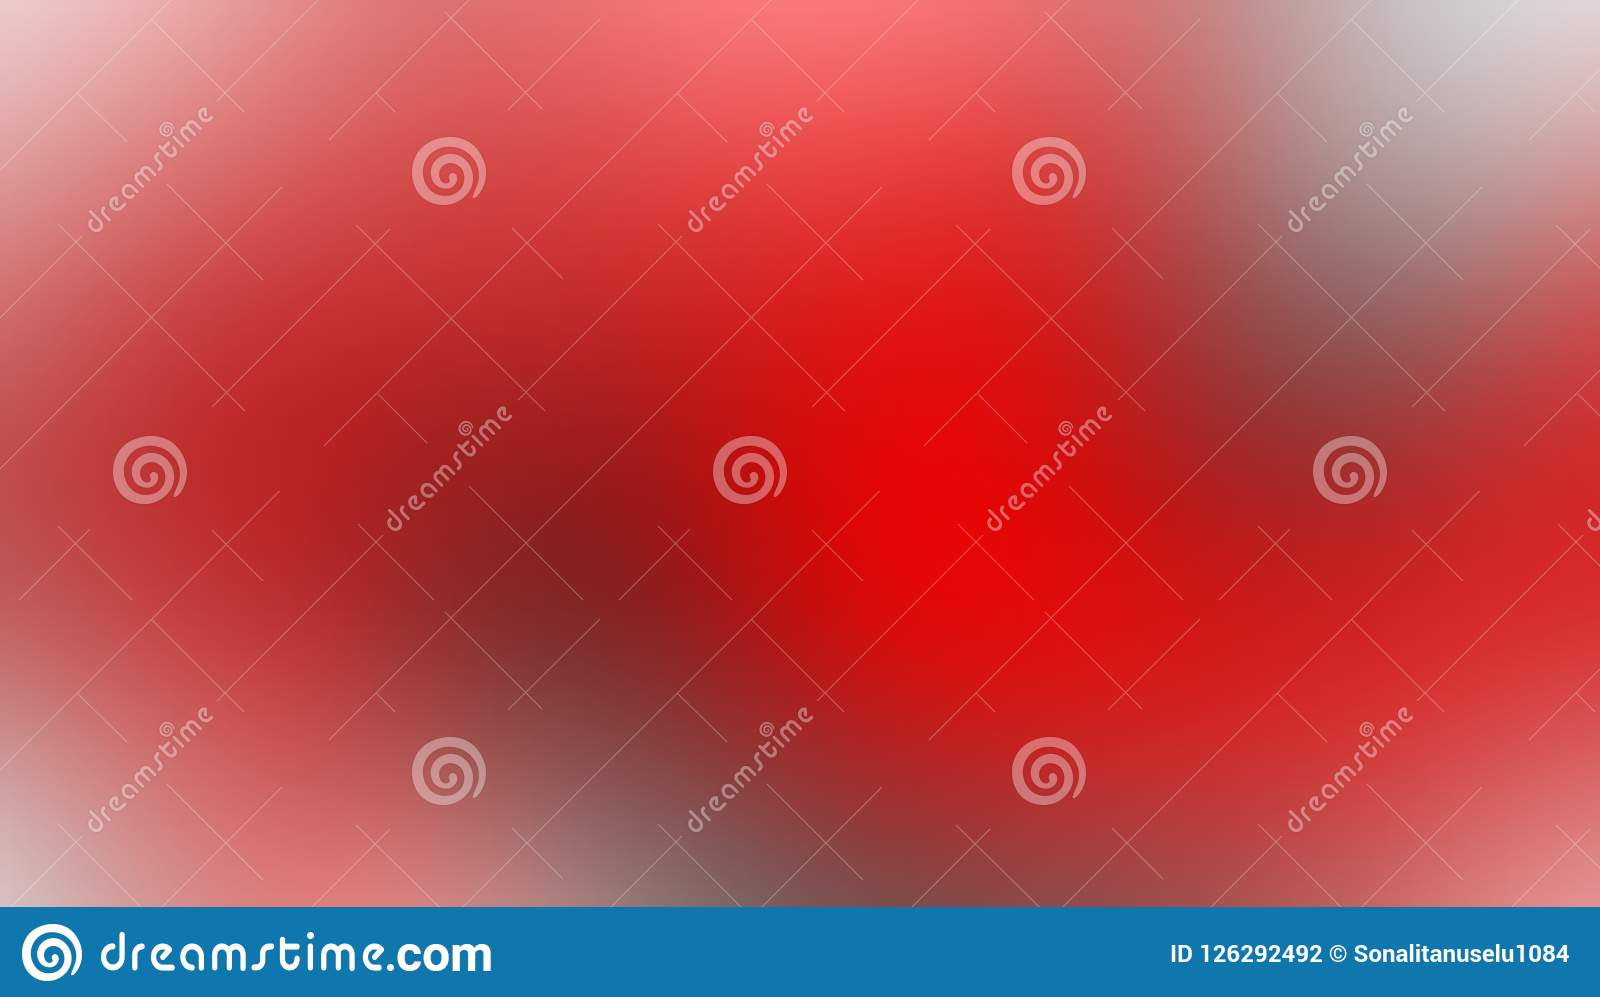 Download Red And White Blurred Shaded Background Wallpaper Vivid Color Vector Illustration Stock